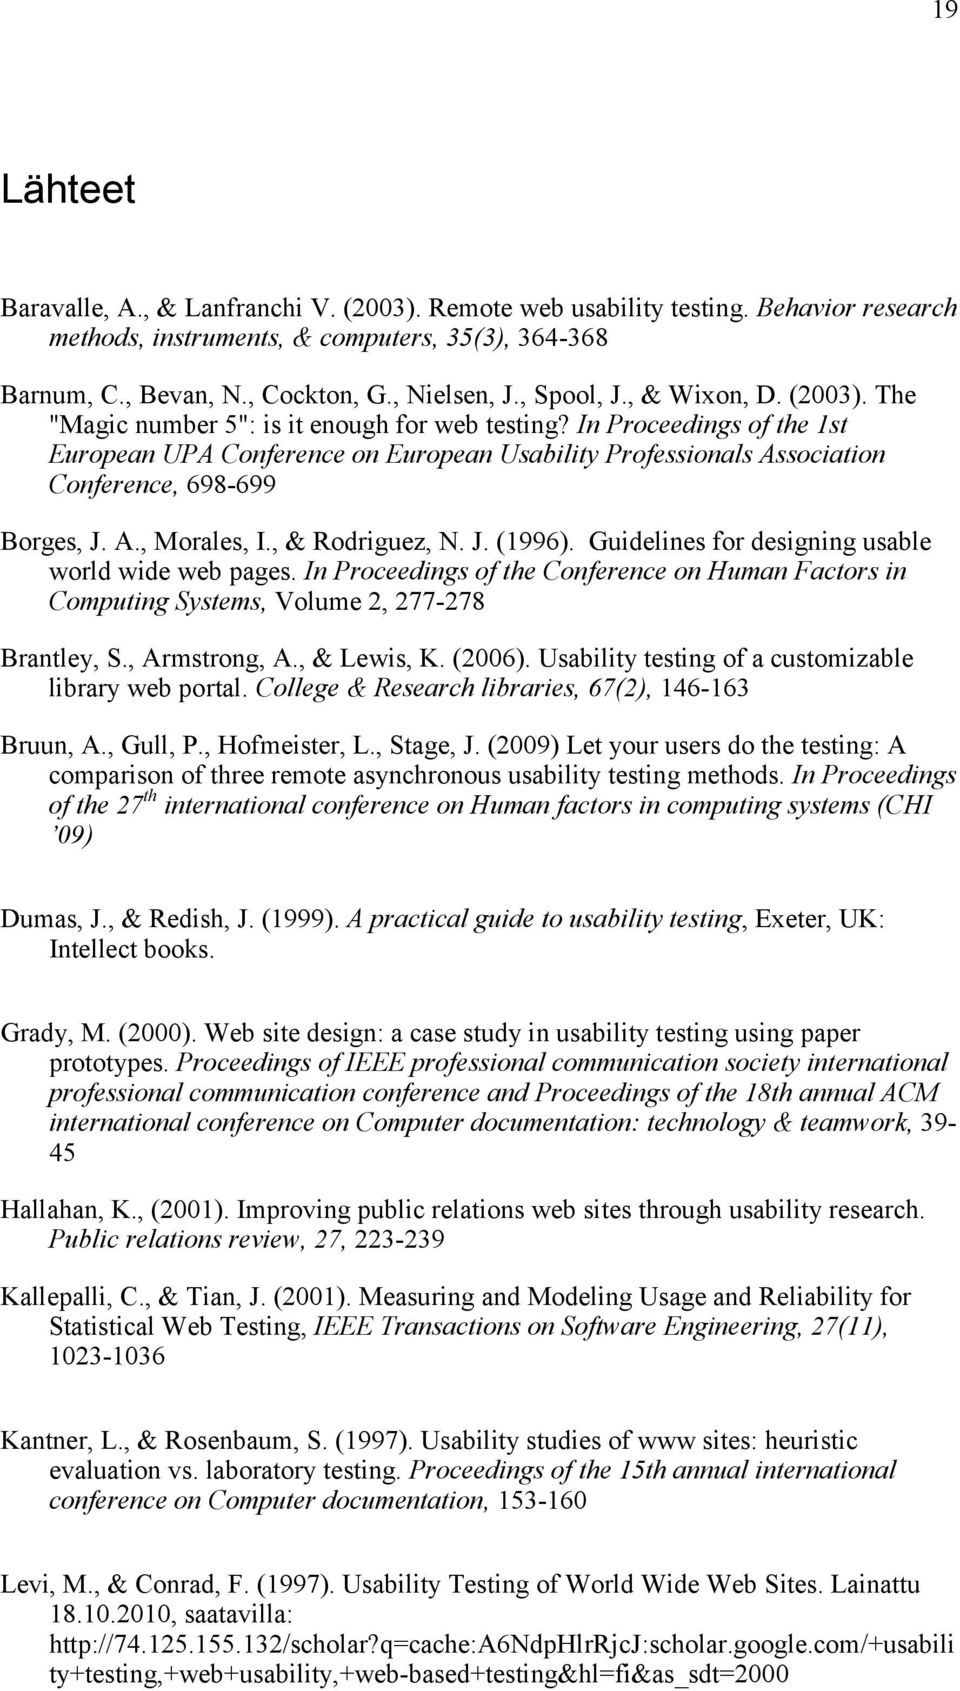 In Proceedings of the 1st European UPA Conference on European Usability Professionals Association Conference, 698-699 Borges, J. A., Morales, I., & Rodriguez, N. J. (1996).